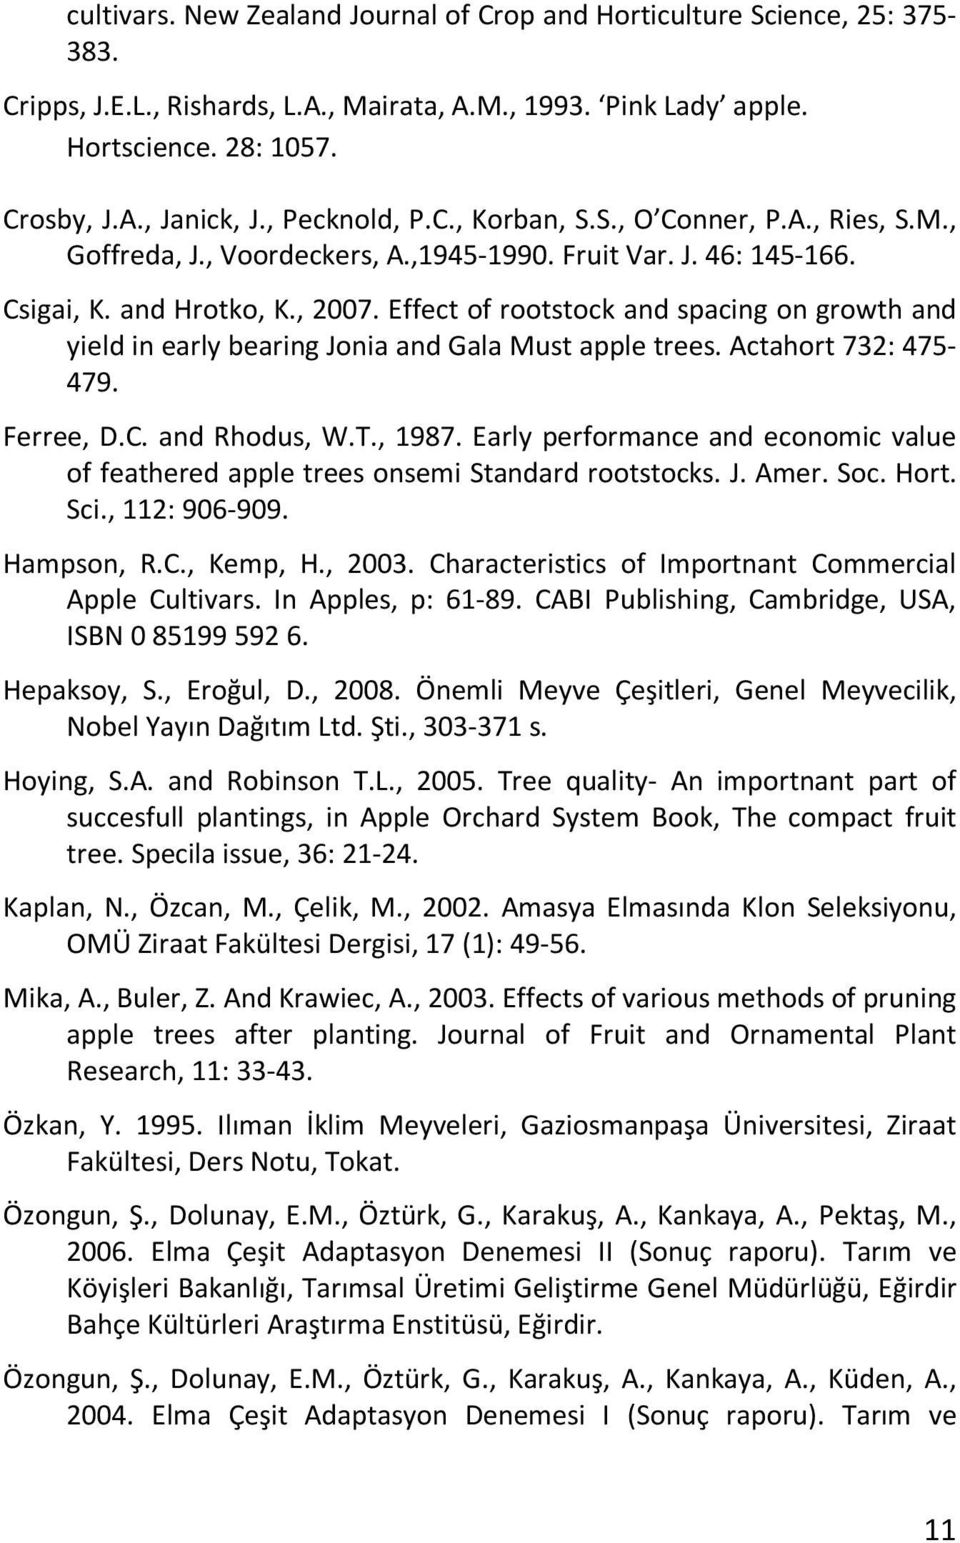 Effect of rootstock and spacing on growth and yield in early bearing Jonia and Gala Must apple trees. Actahort 732: 475-479. Ferree, D.C. and Rhodus, W.T., 1987.